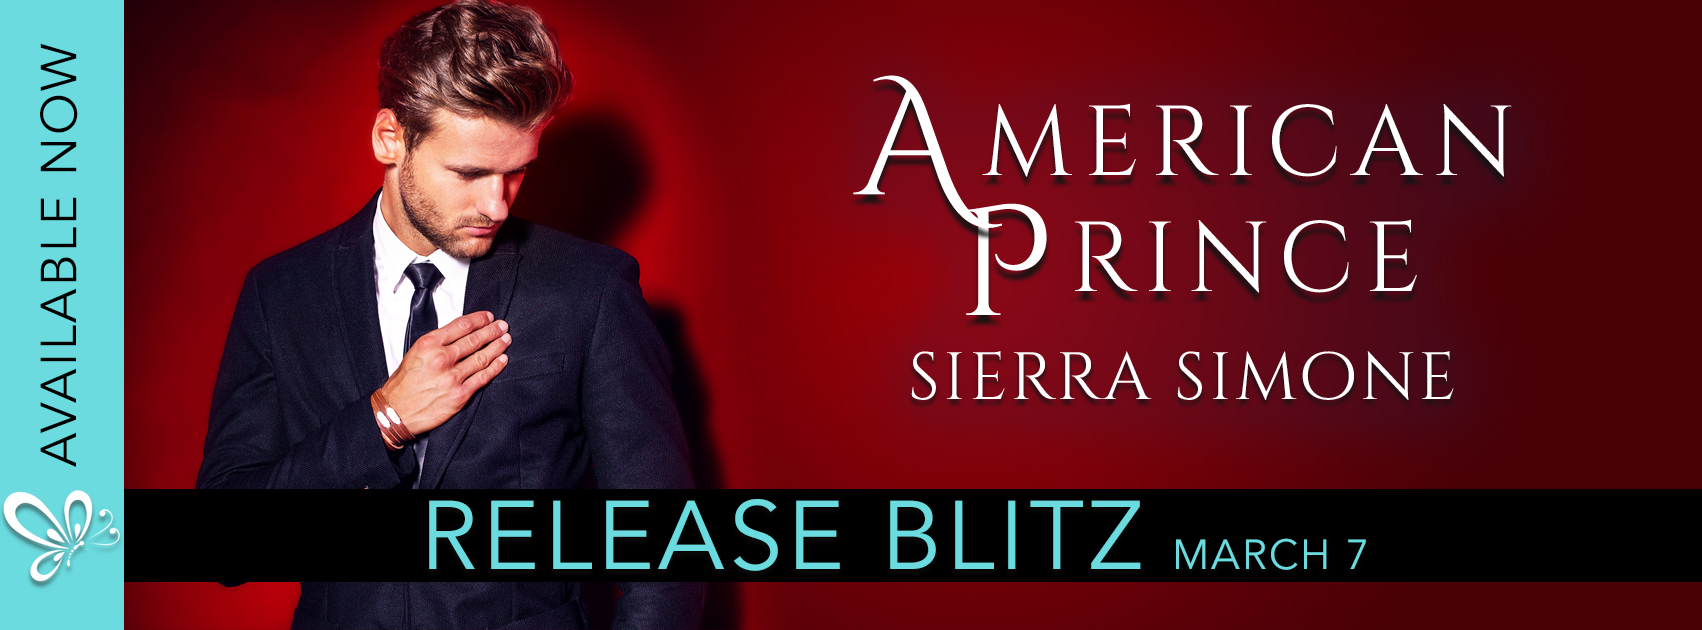 Release Blitz: American Prince by Sierra Simone